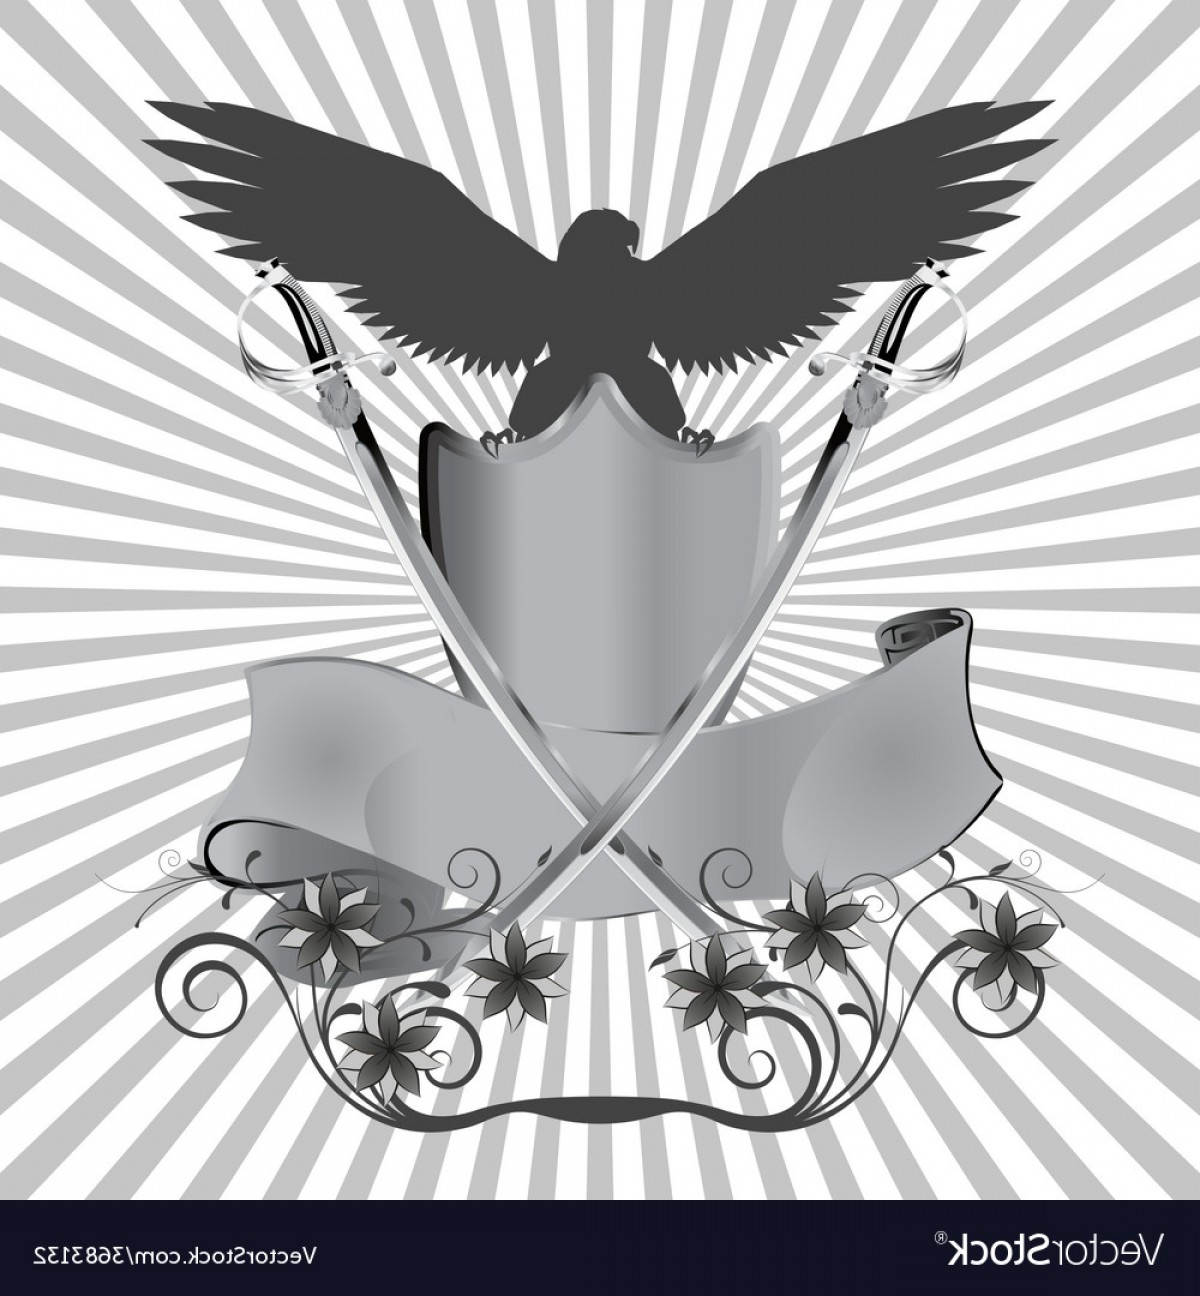 Vector Eagle Shield Sword: Background Eagle On Shield With Swords And Flowers Vector